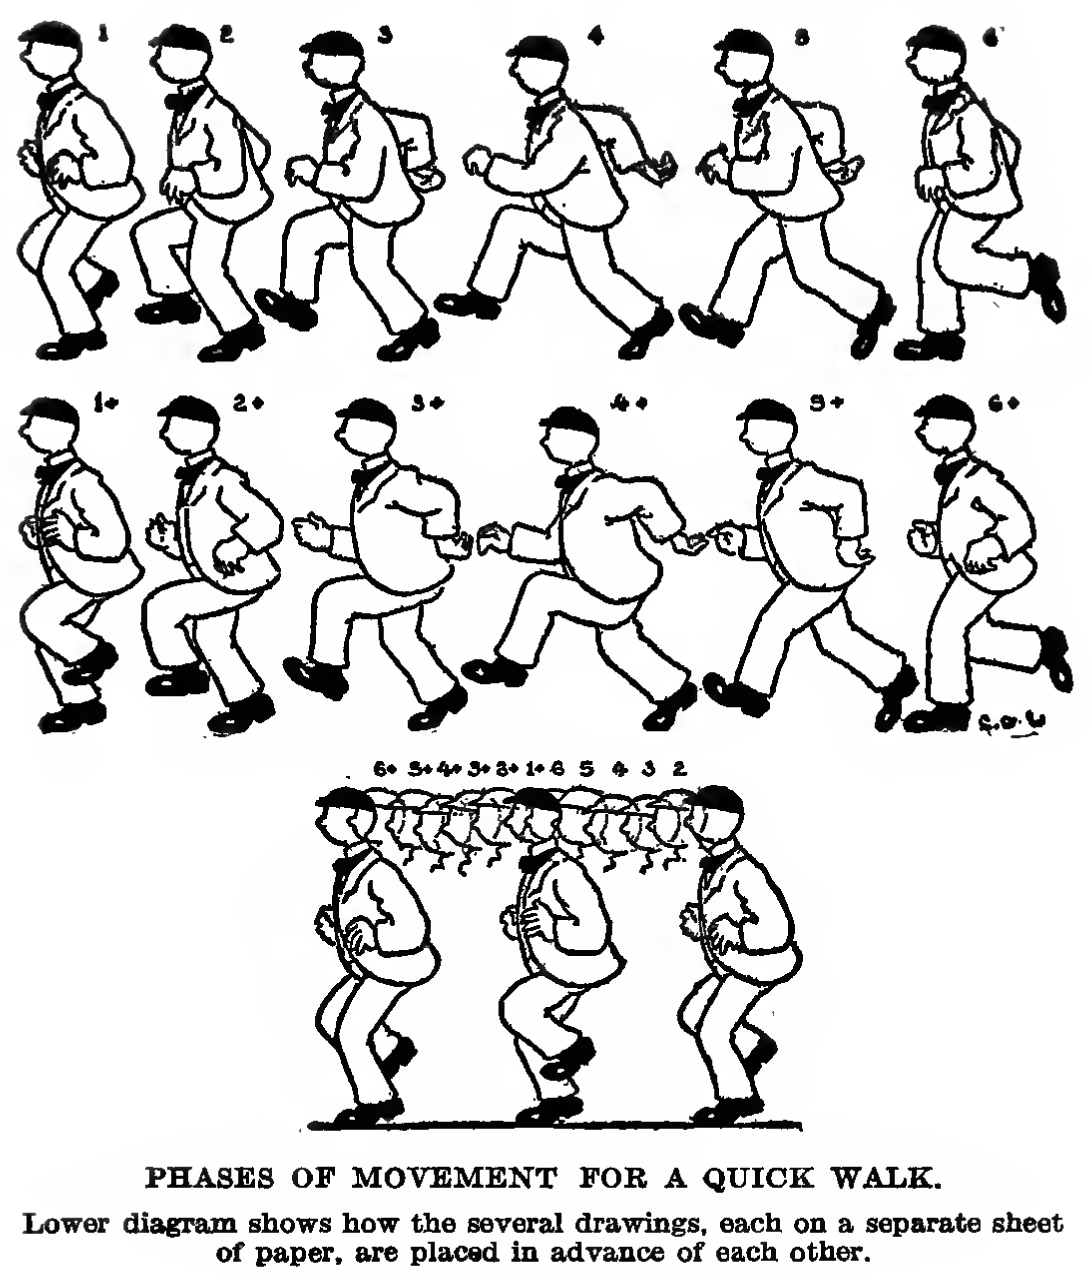 how to draw a quick walk - phases of movement